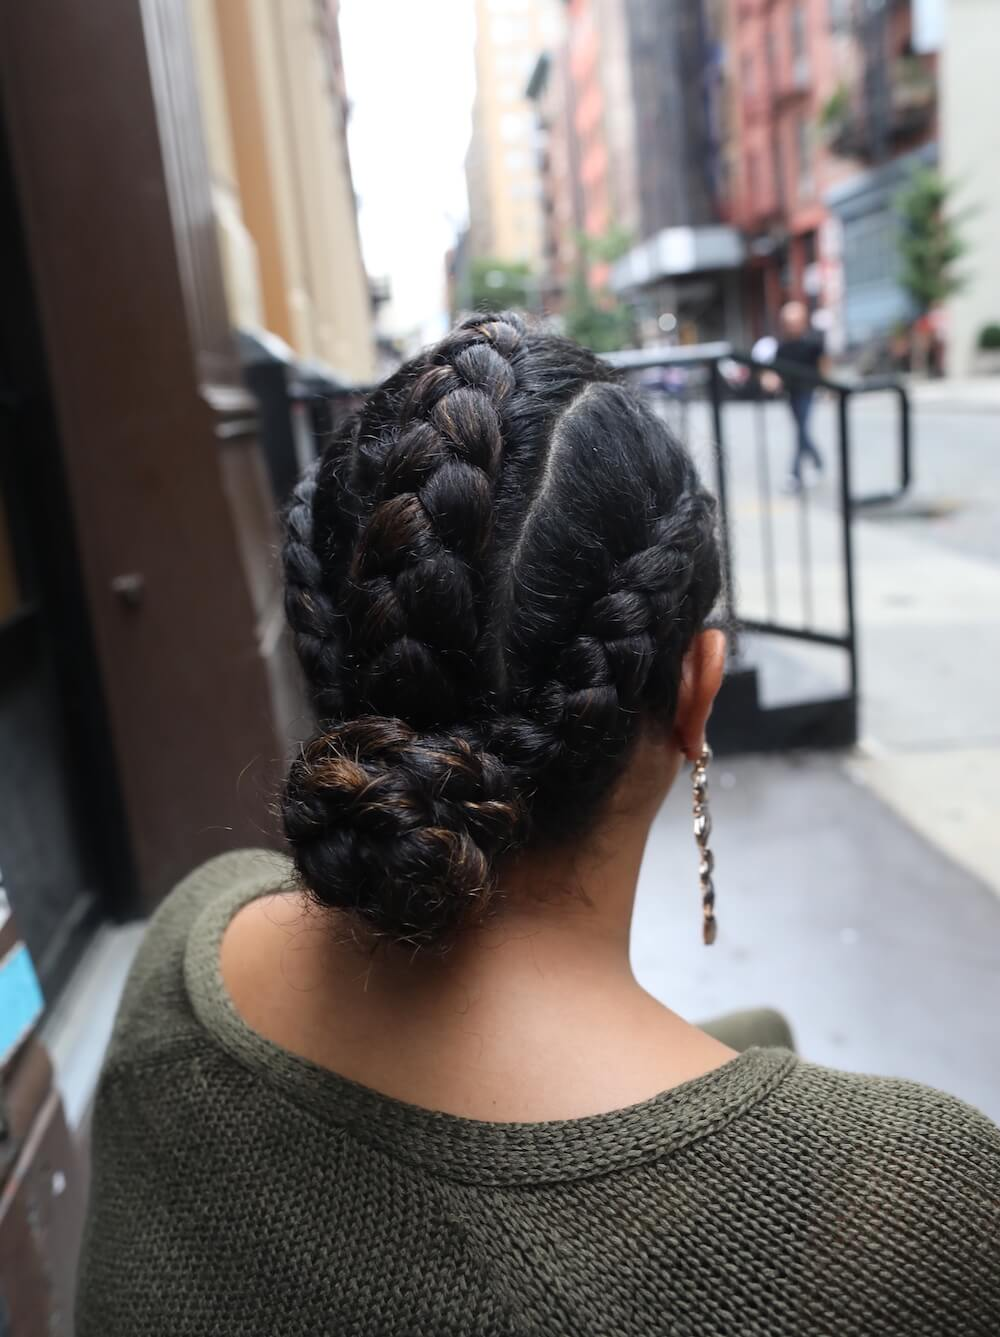 How To Braid Curly Hair Devacurl Blog